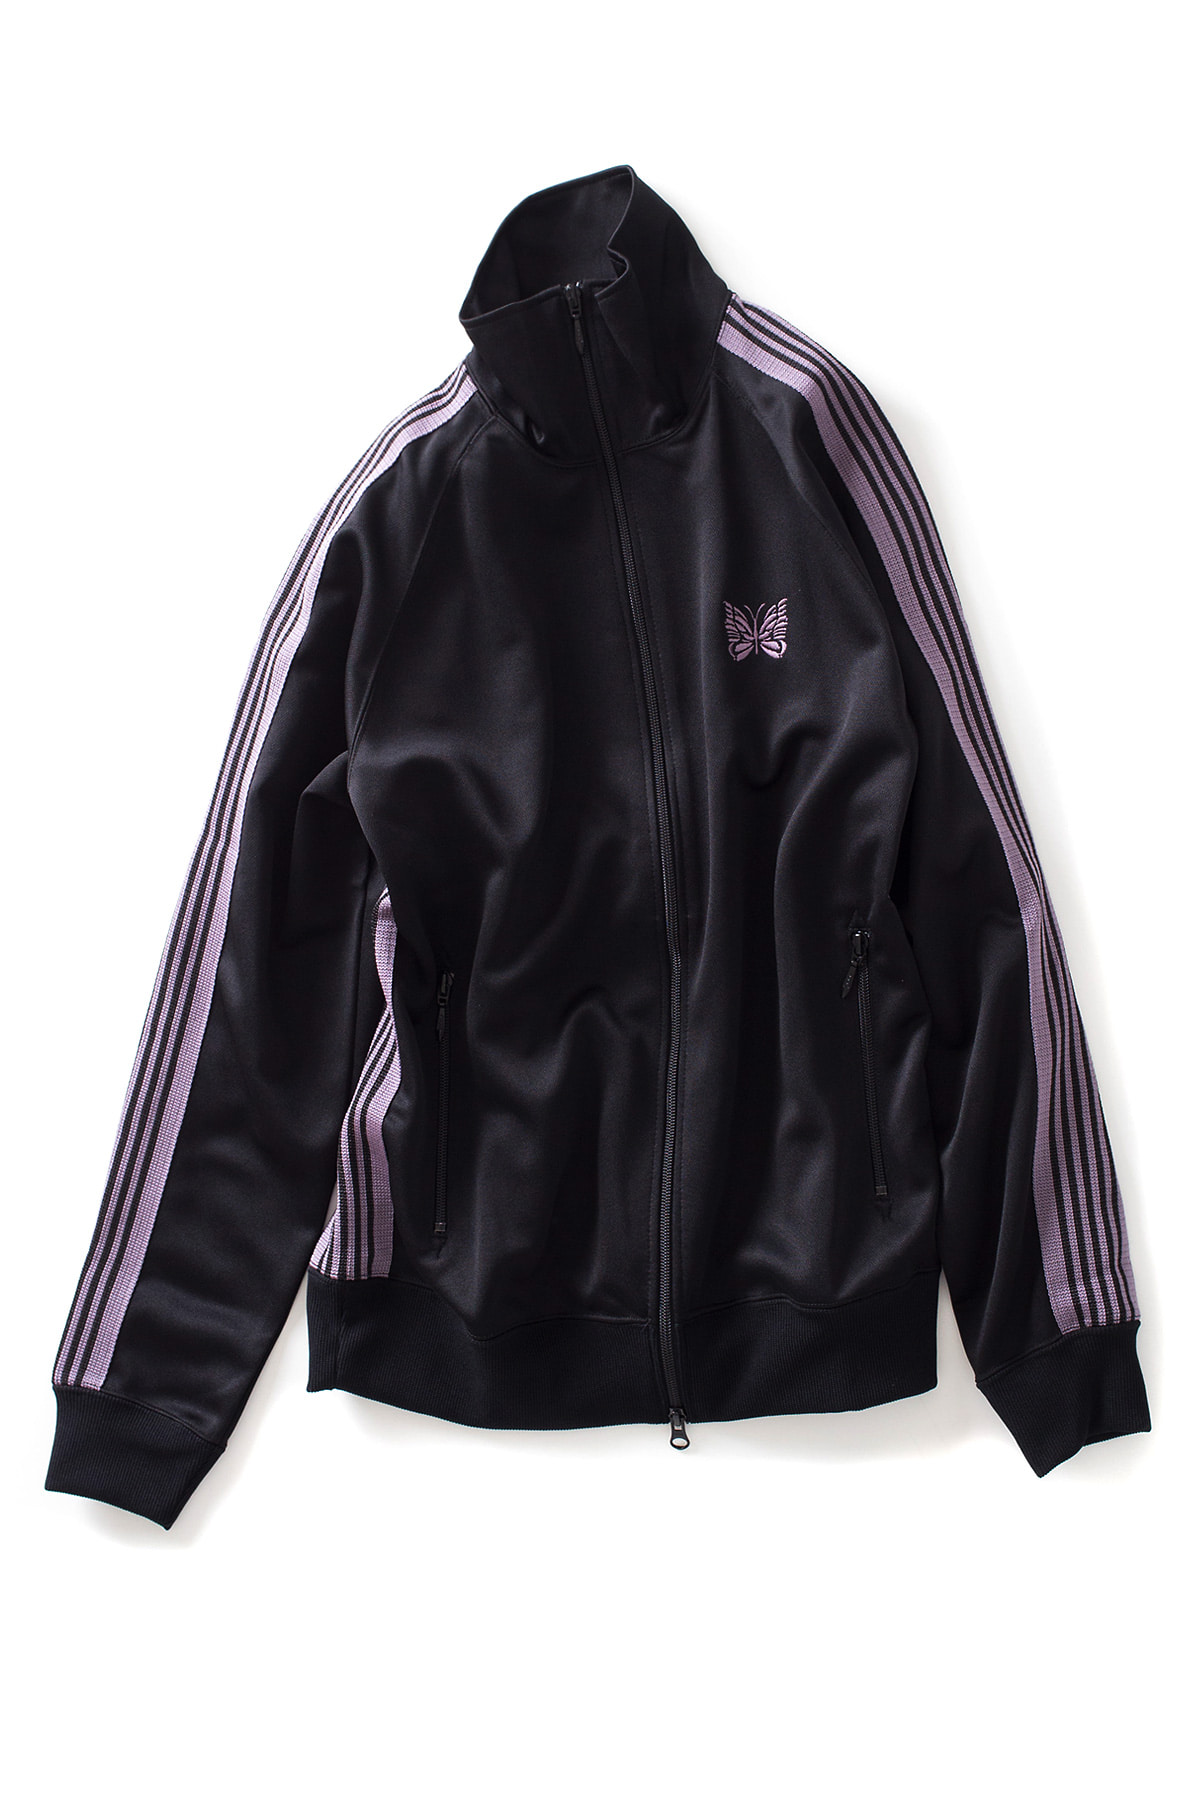 NEEDLES : Track Jacket (Black)